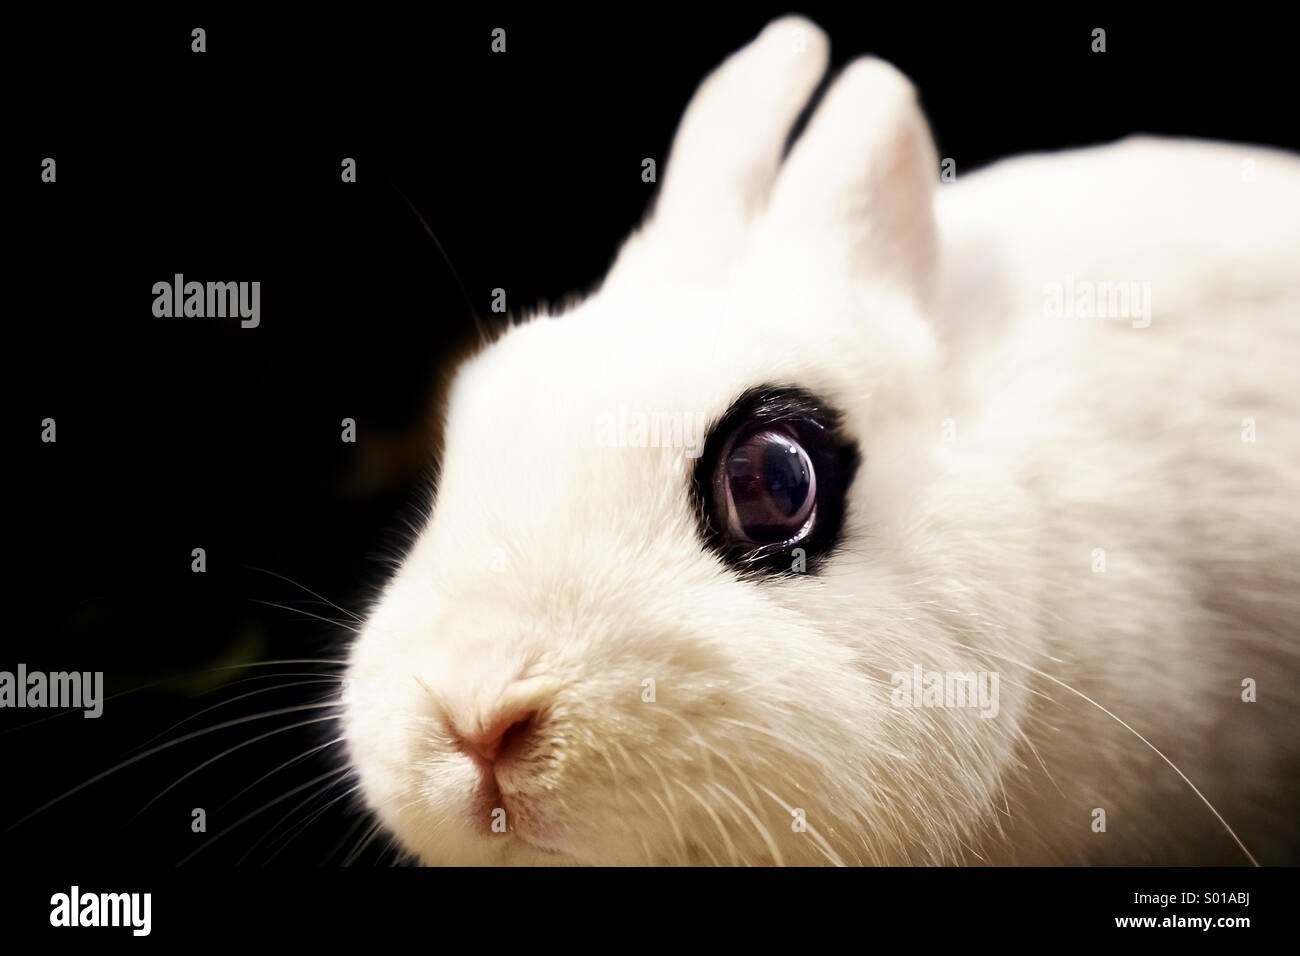 Lapin blanc close up Photo Stock